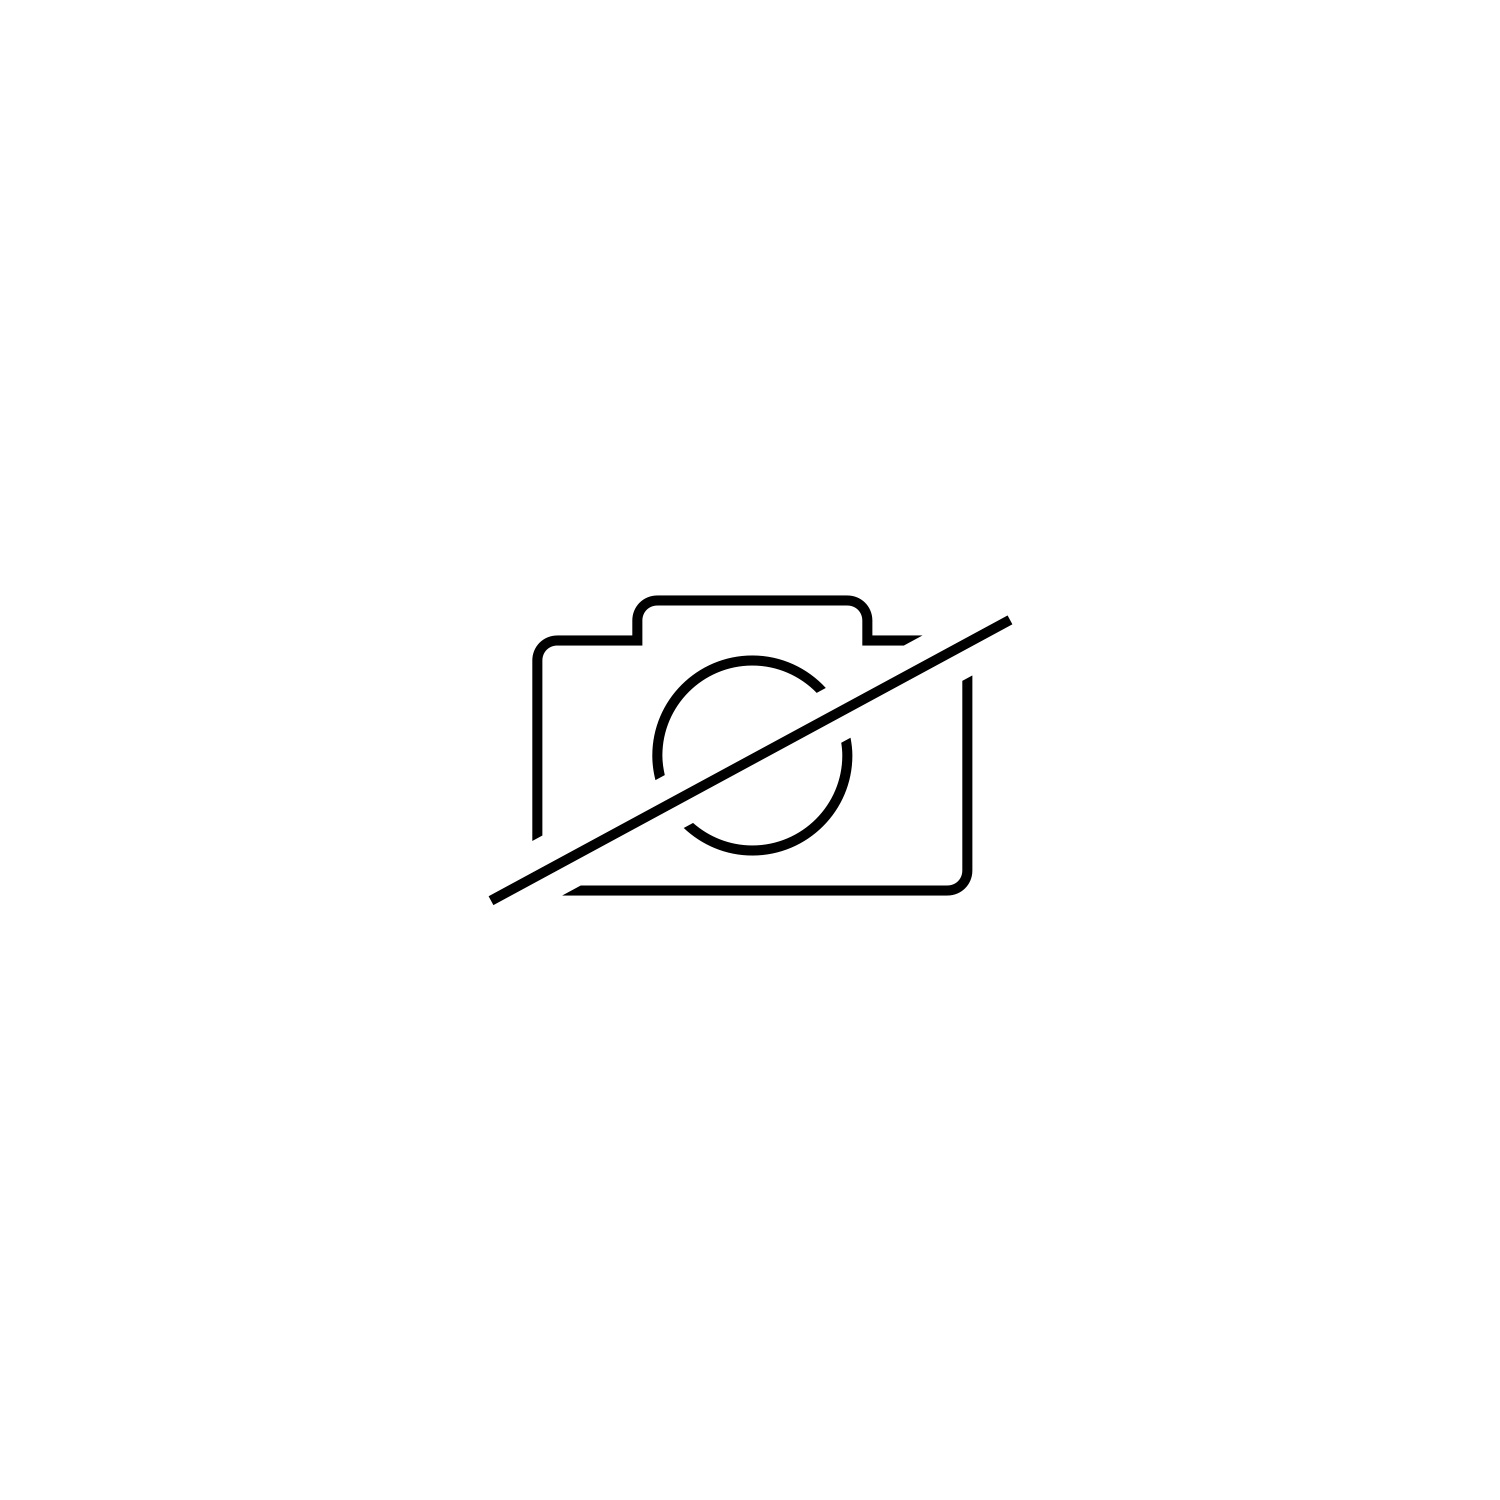 Audi Sport Zipoffjacket, Mens, black, M